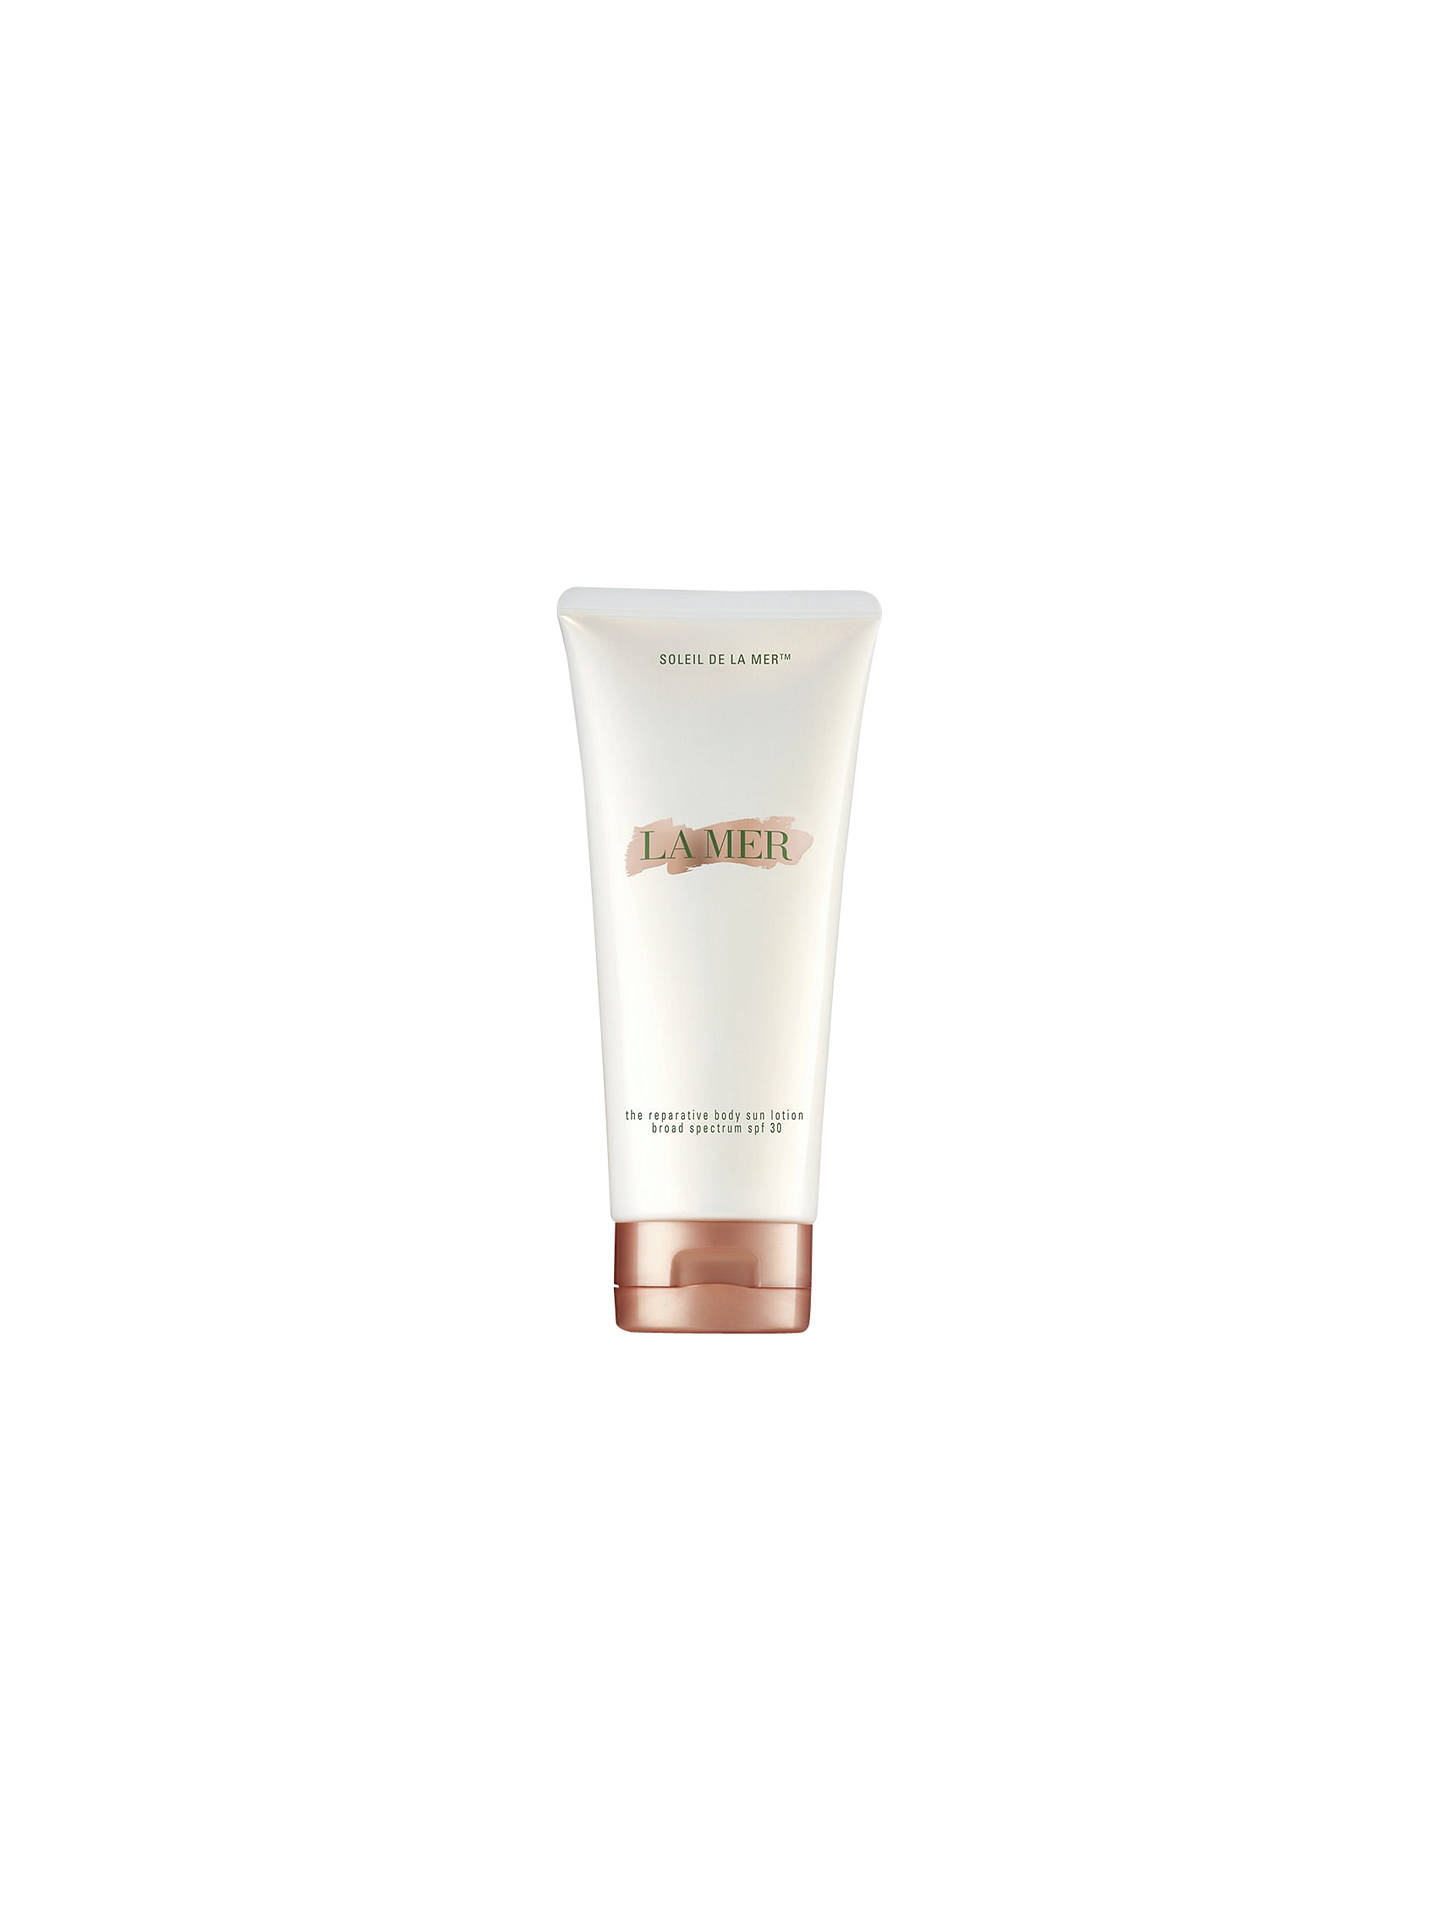 Buy La Mer The Reparative Body Sun Lotion SPF30, 200ml Online at johnlewis.com